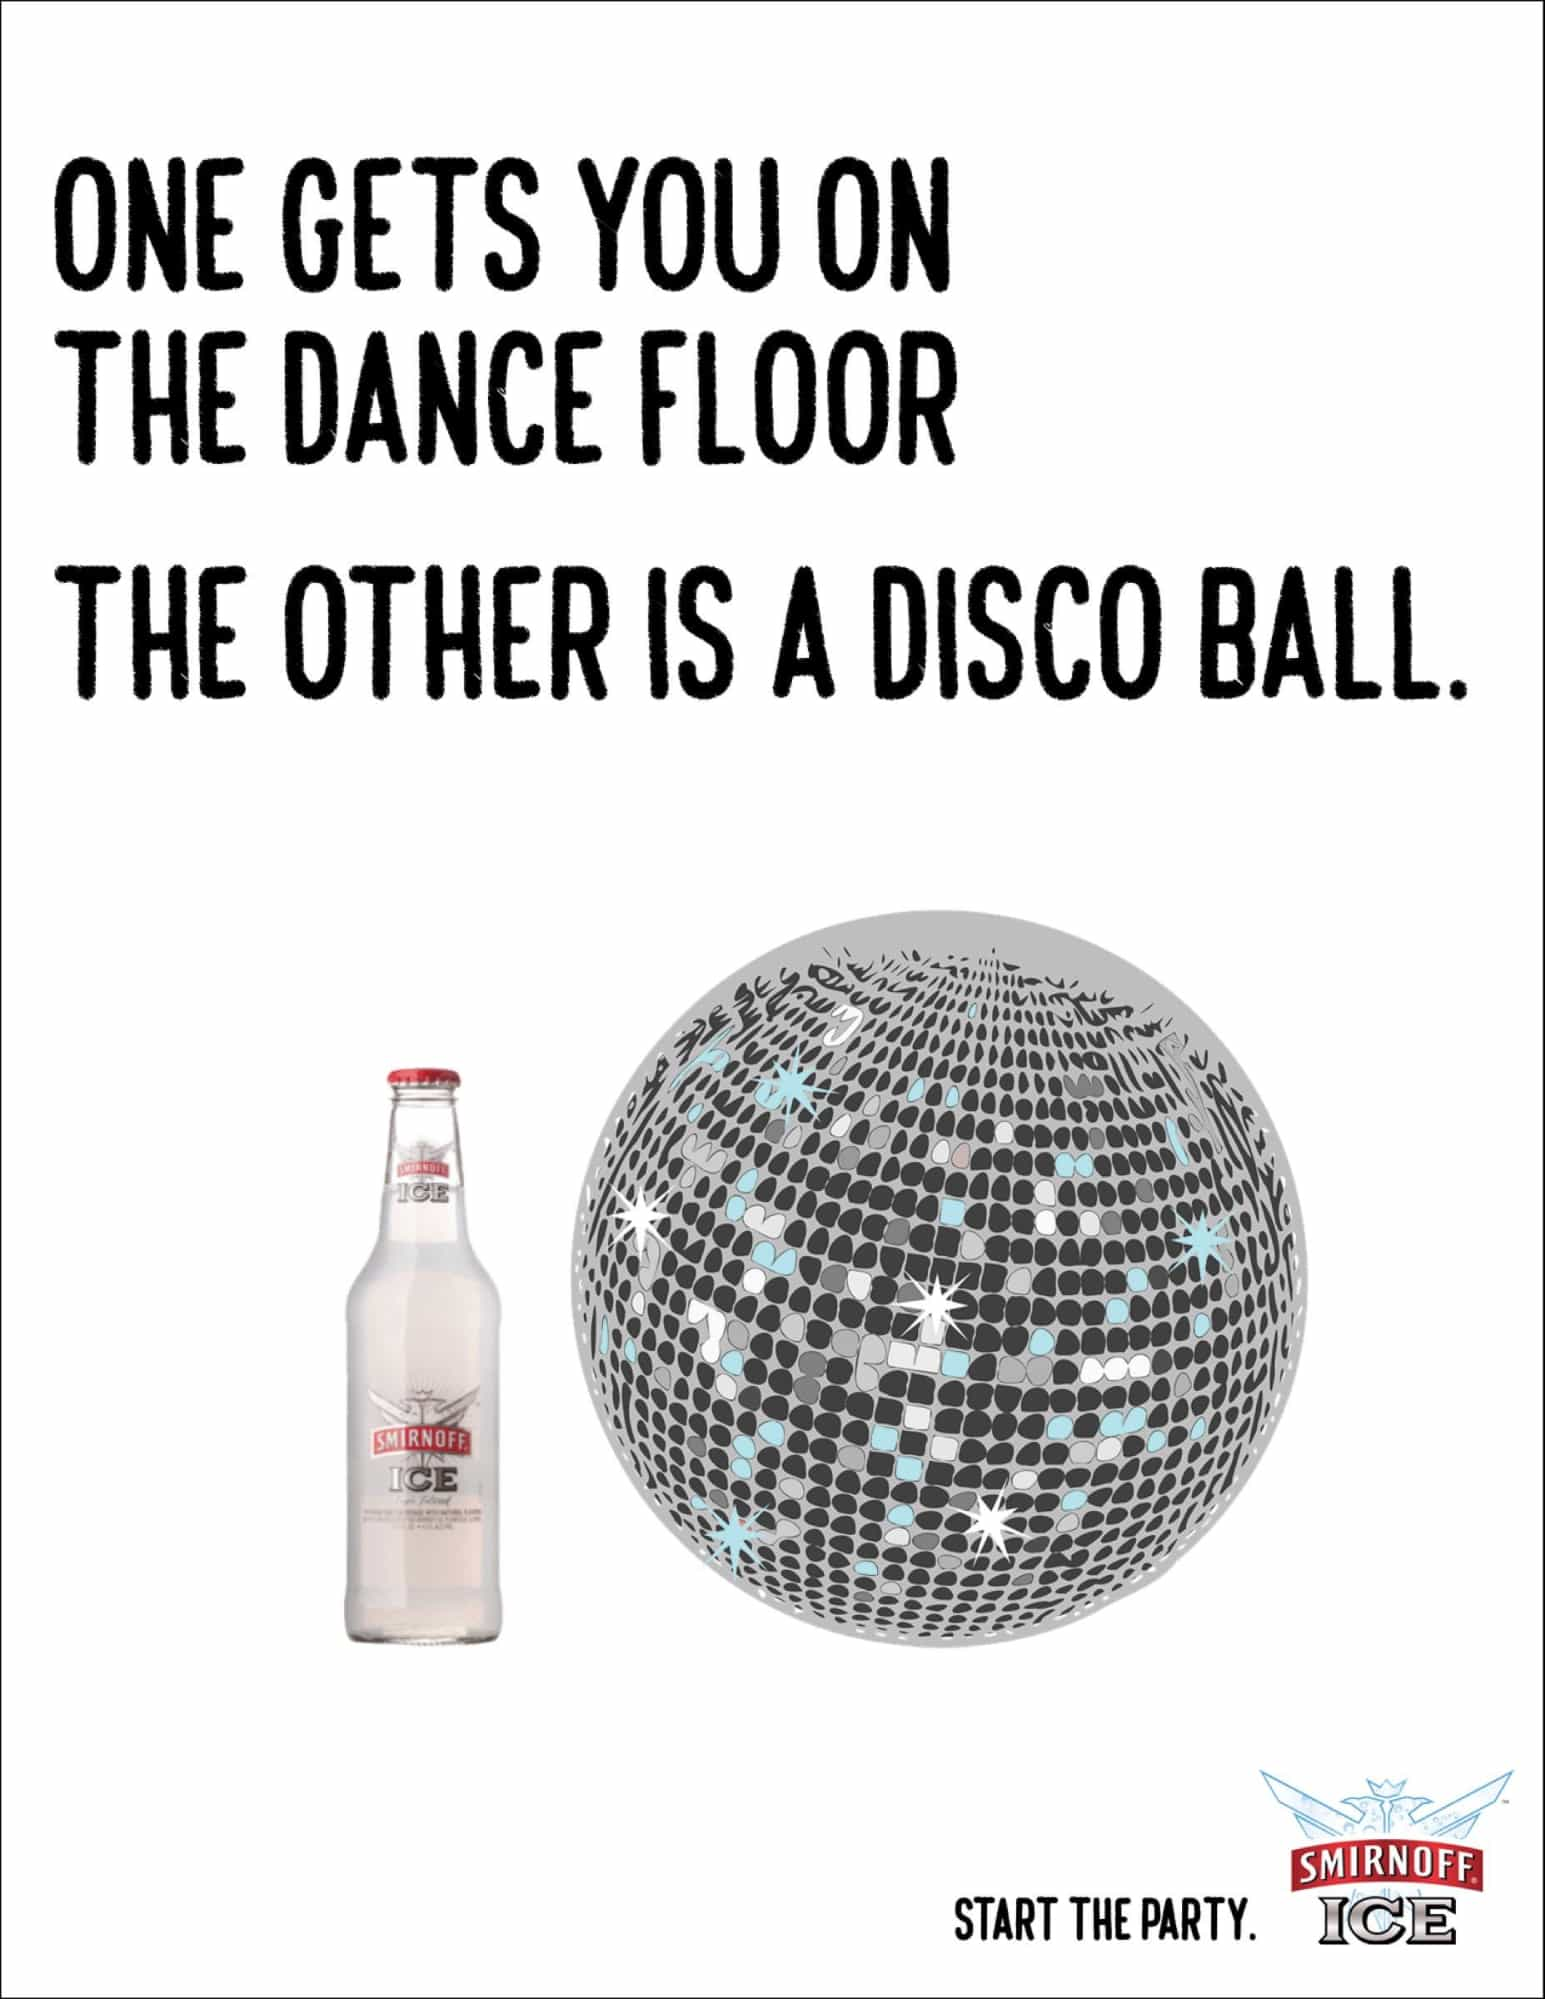 smirnoff disco advertisement